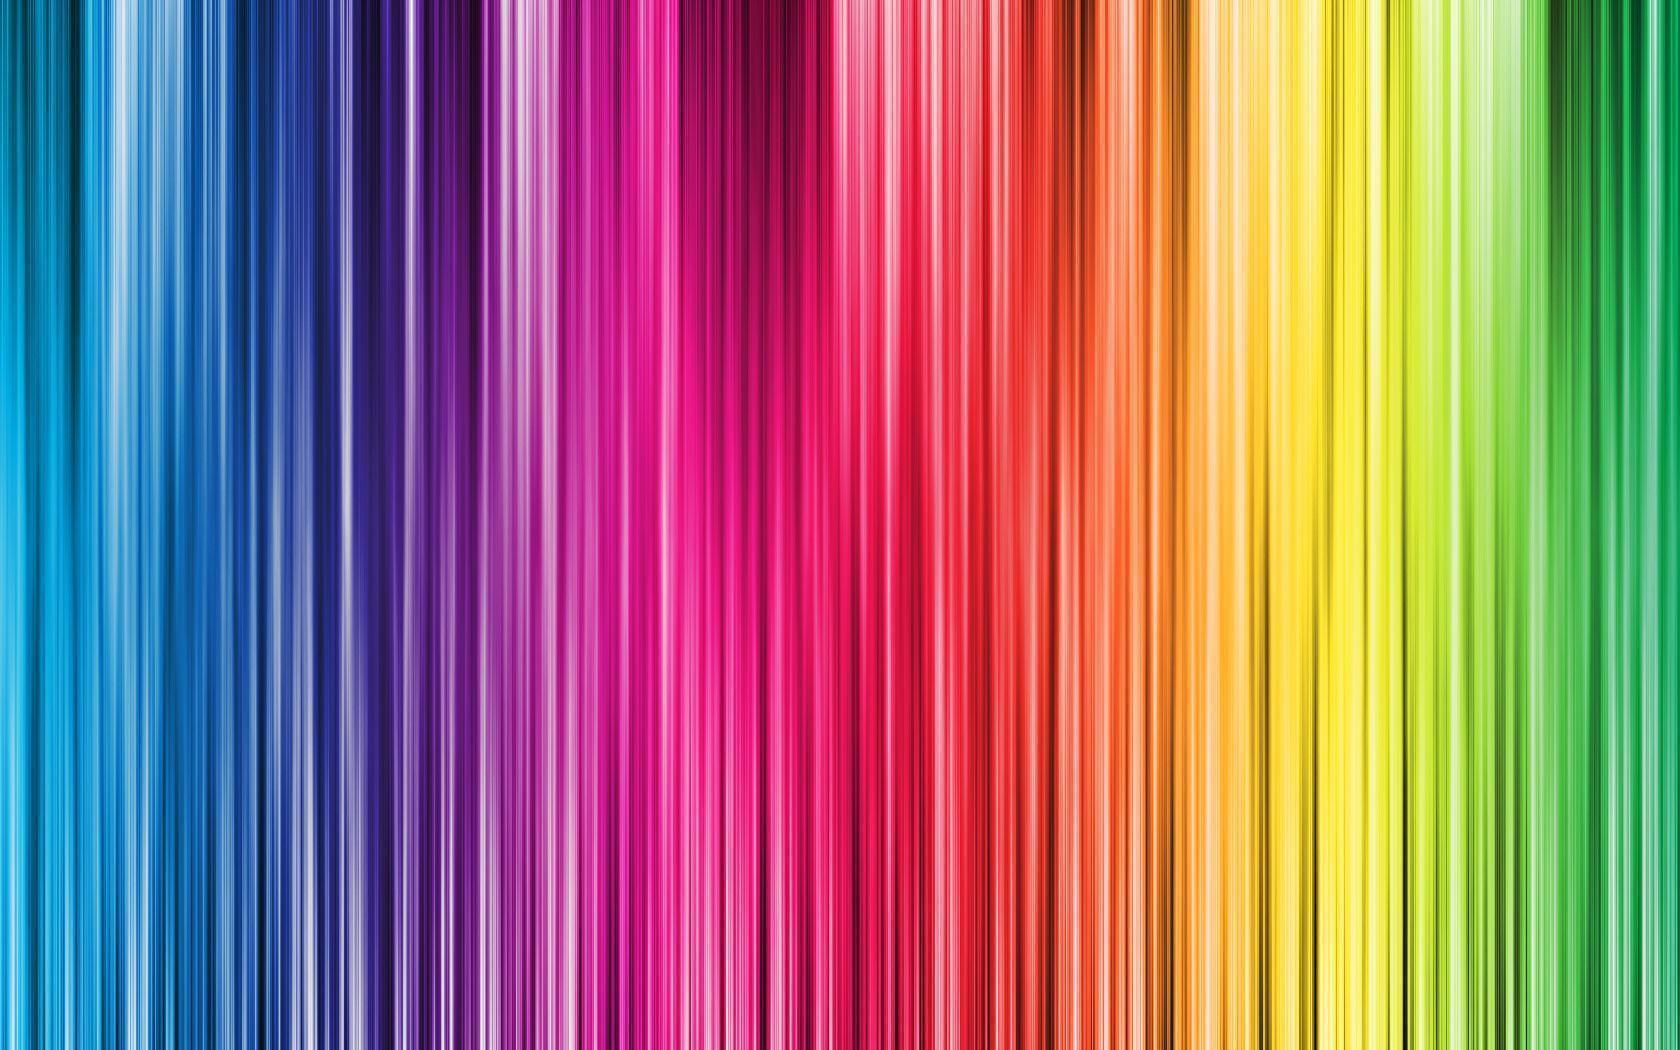 Multi Colored Wallpapers Wallpaper Cave HD Wallpapers Download Free Images Wallpaper [1000image.com]